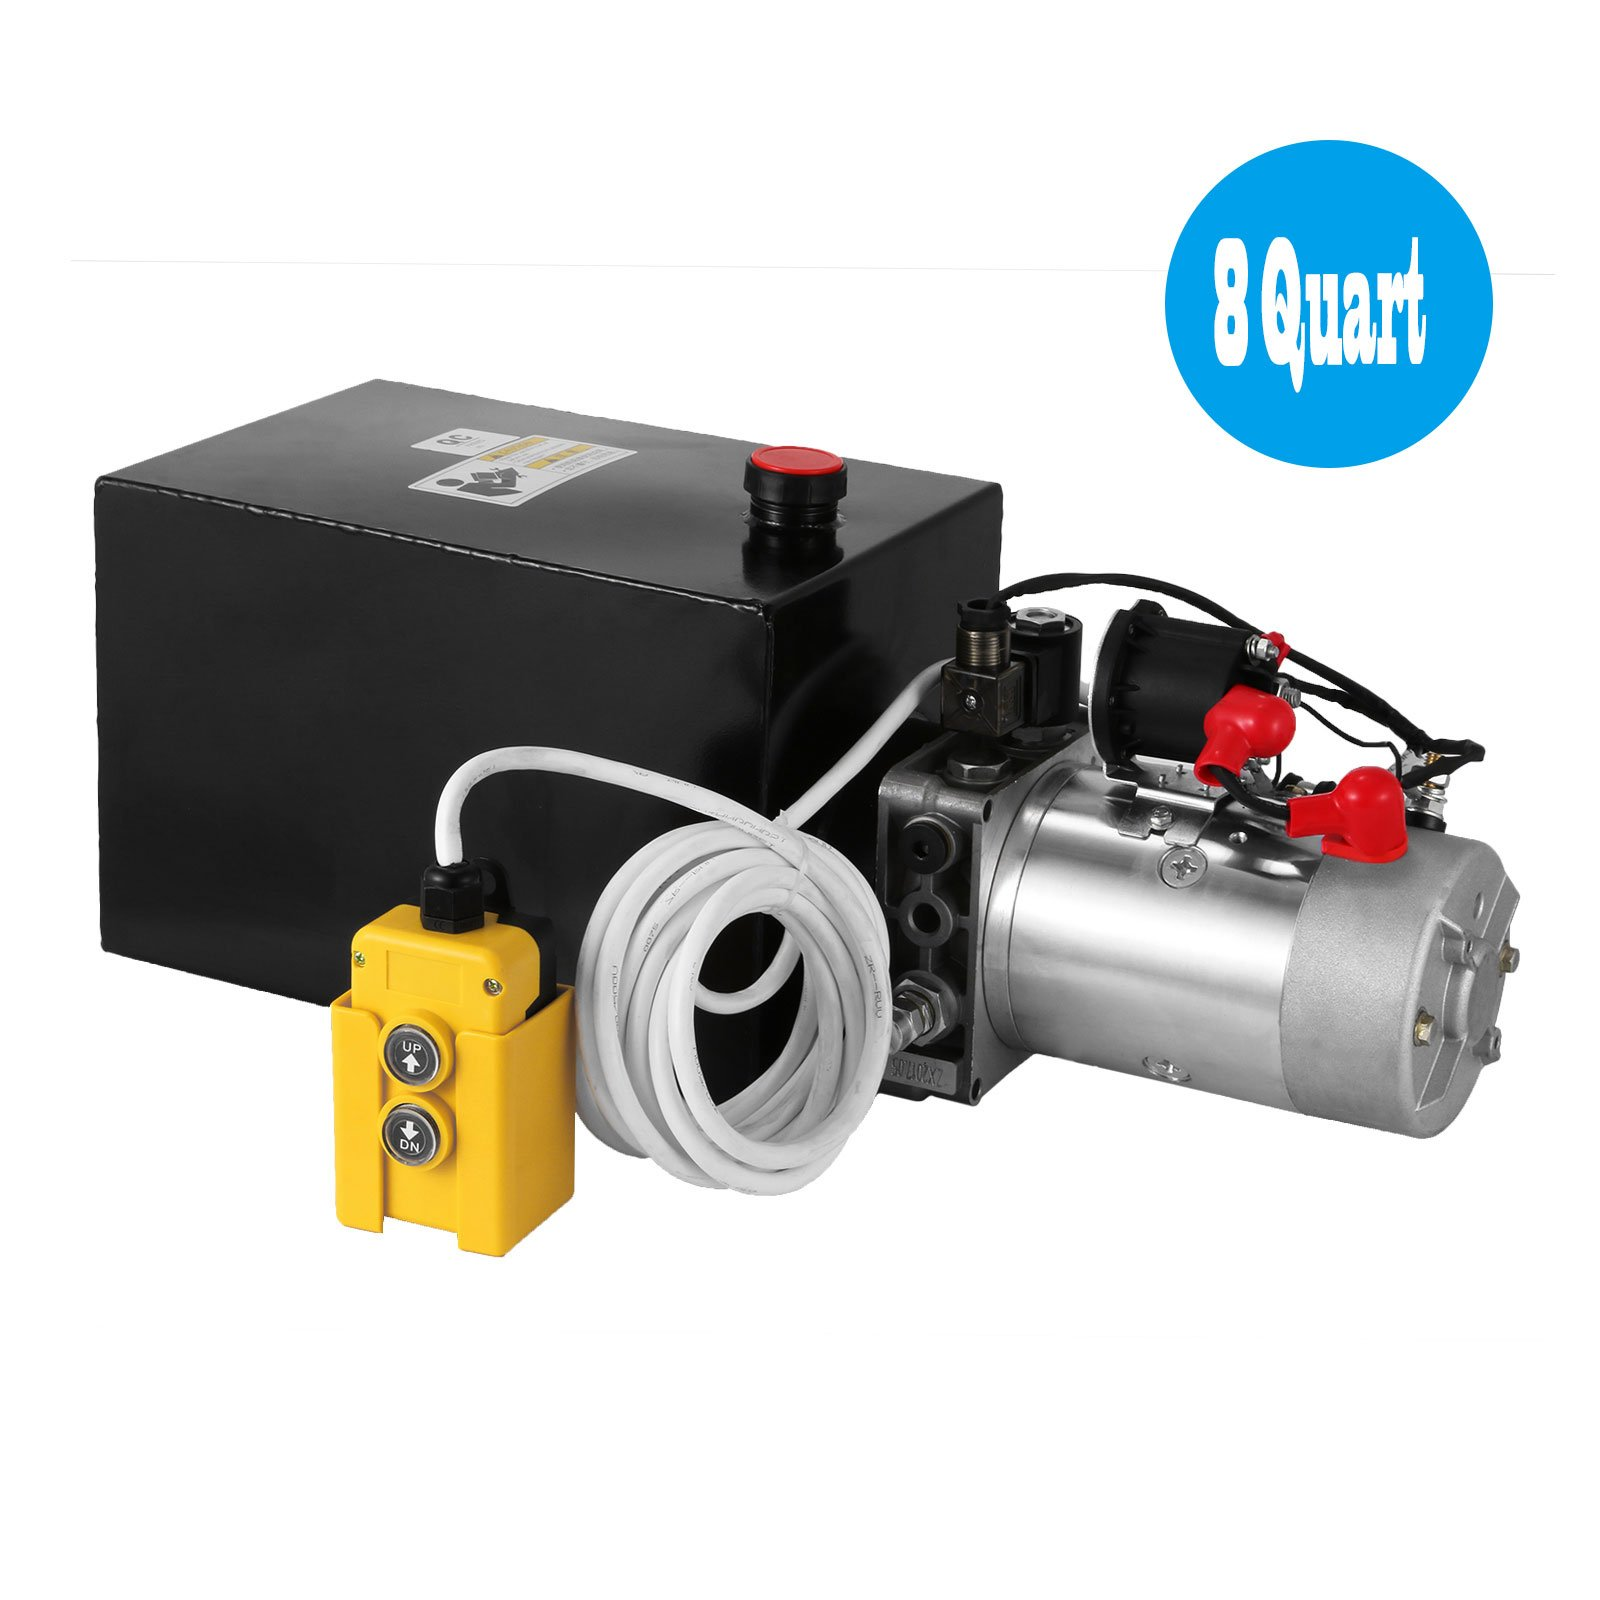 Happybuy 12V/DC Hydraulic Pump Double Acting Solenoid Operation Supply Unit W/ Remote Controller Hydraulic Power Unit For Dump Dump Truck Unloading Crane Lifting (8 Quart Double Acting Steel)